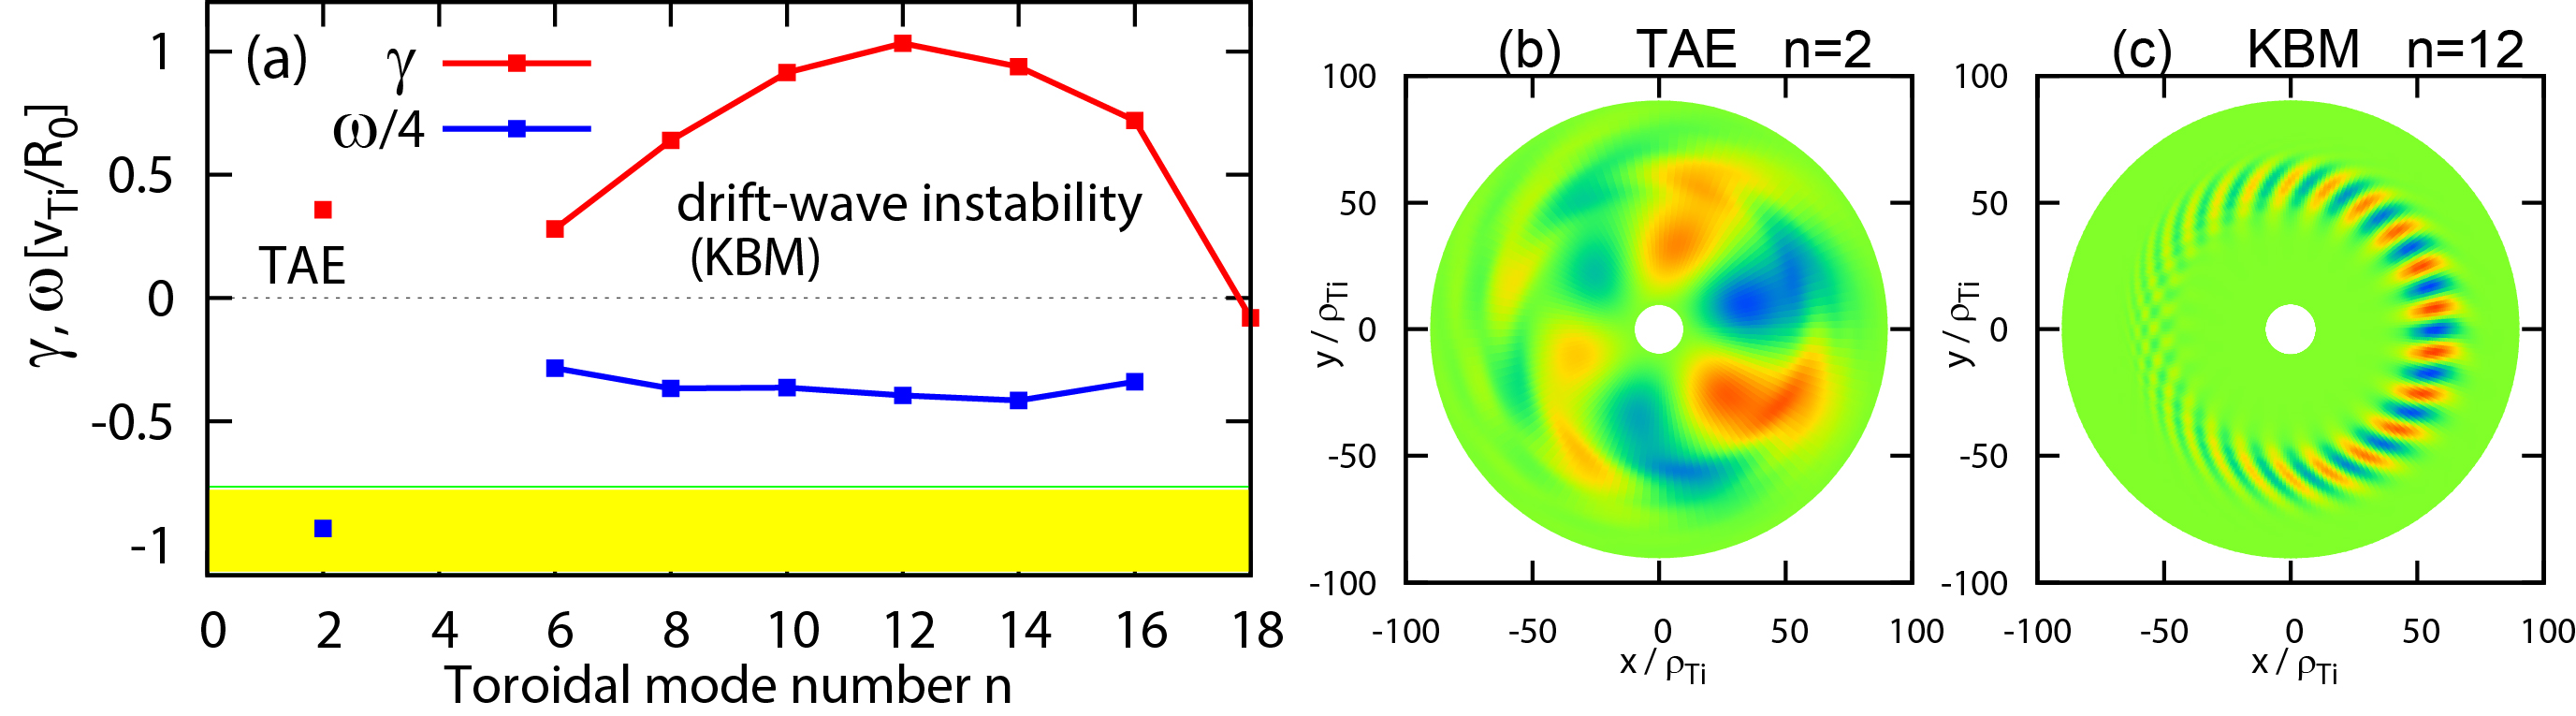 (a) Linear growth rate $\gamma$ and real frequency $\omega$ as a function of toroidal mode number $n$, where the gap of Alfven continuum is indicated by yellow color.  Color map of electrostatic potential $\phi$ of (b) TAE ($n=2$) and (c) a drift-wave instability (KBM) with $n=12$.